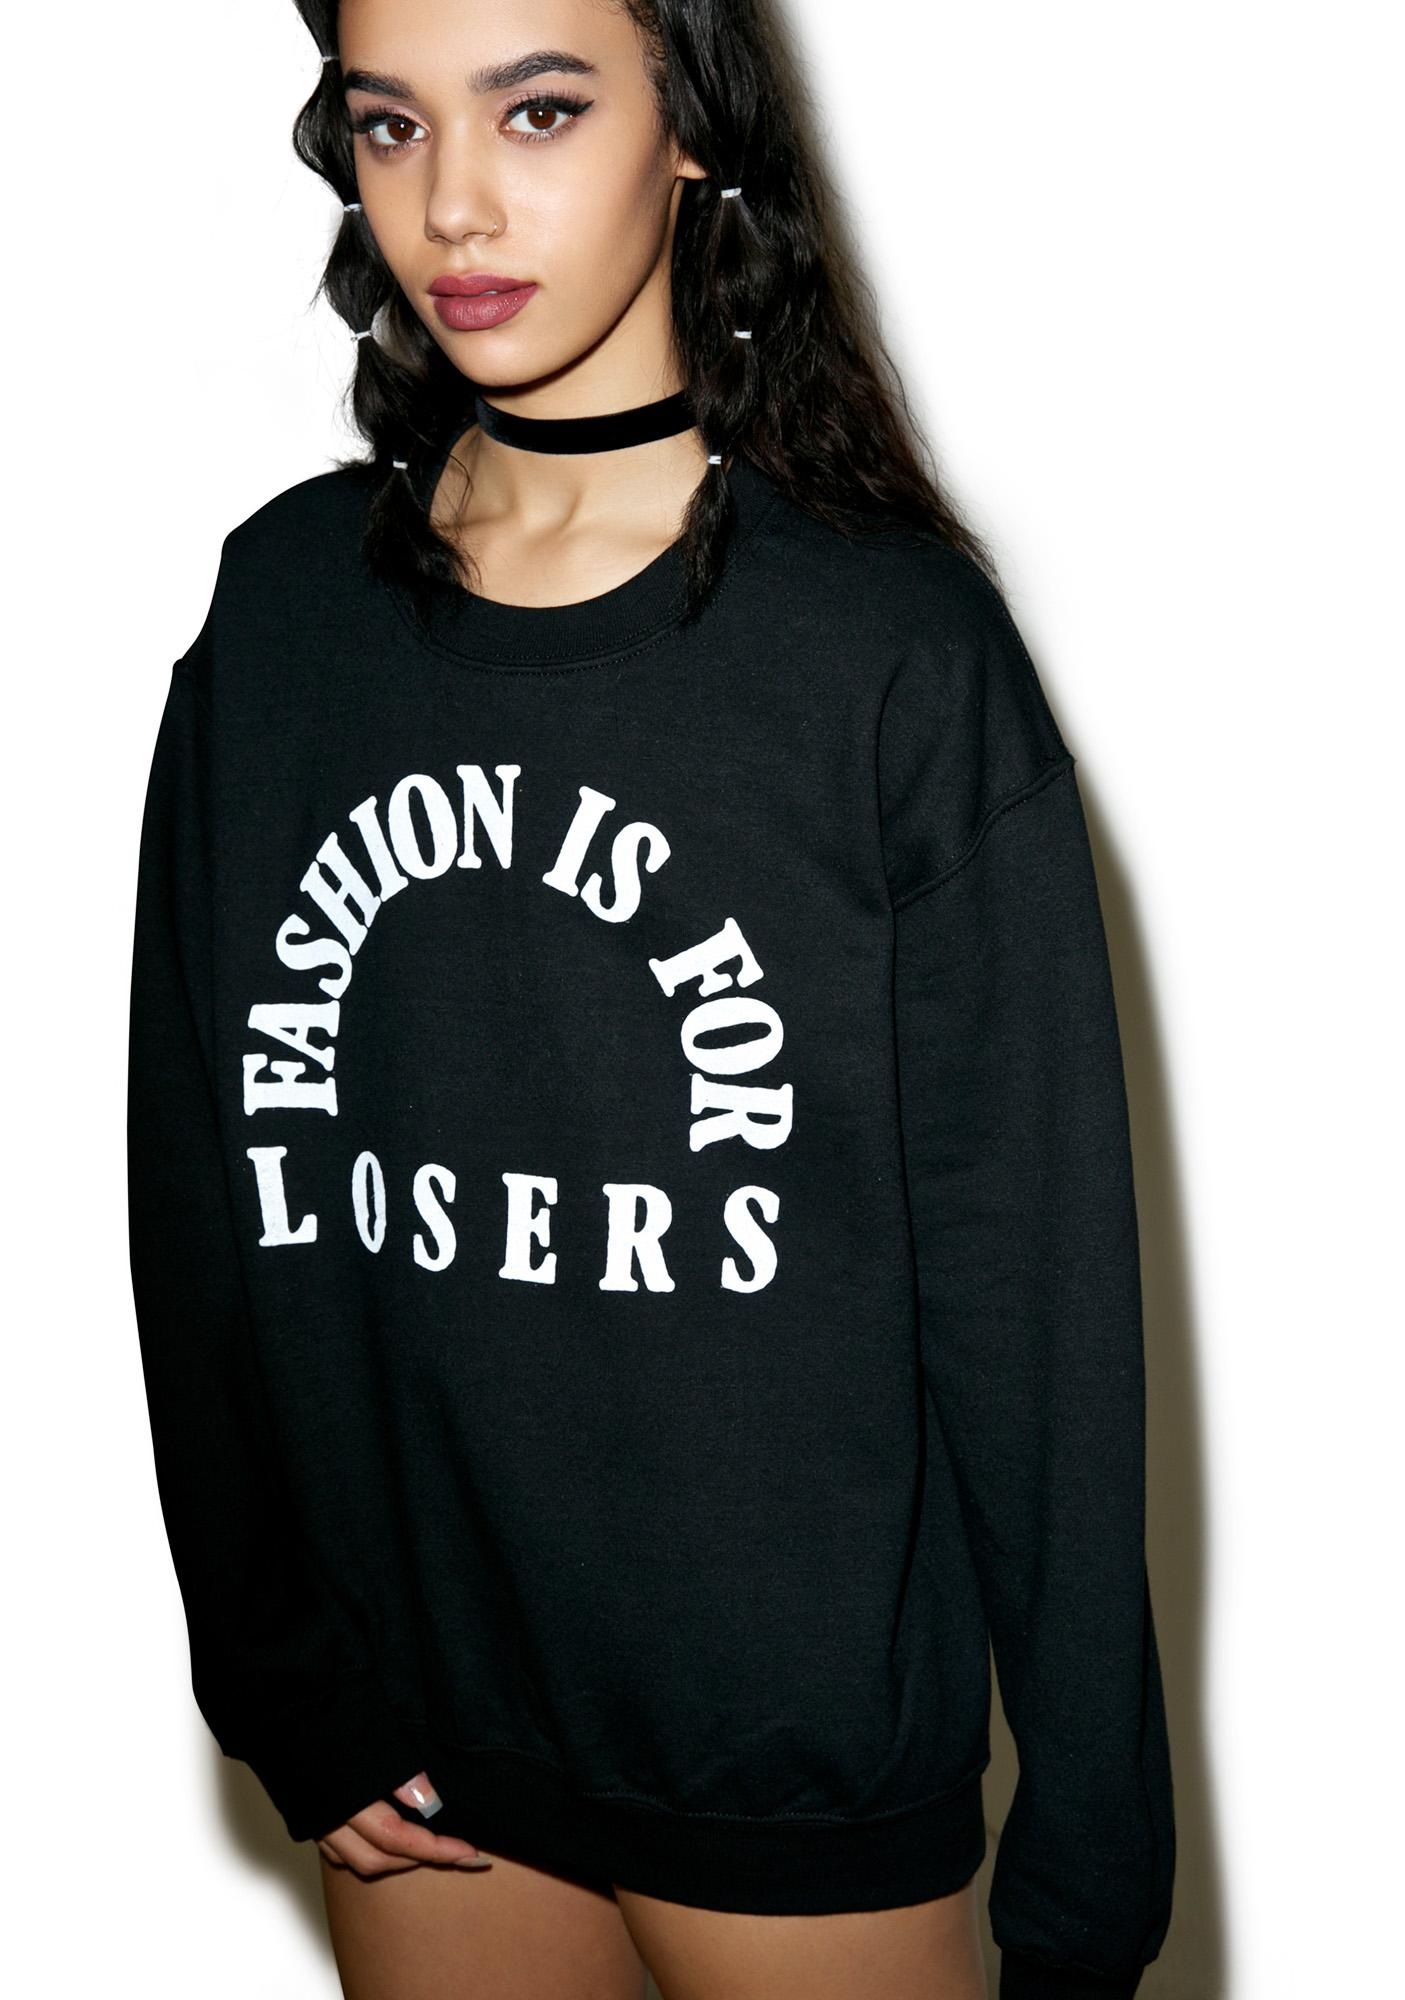 Burger And Friends Fashion Is For Losers Sweatshirt